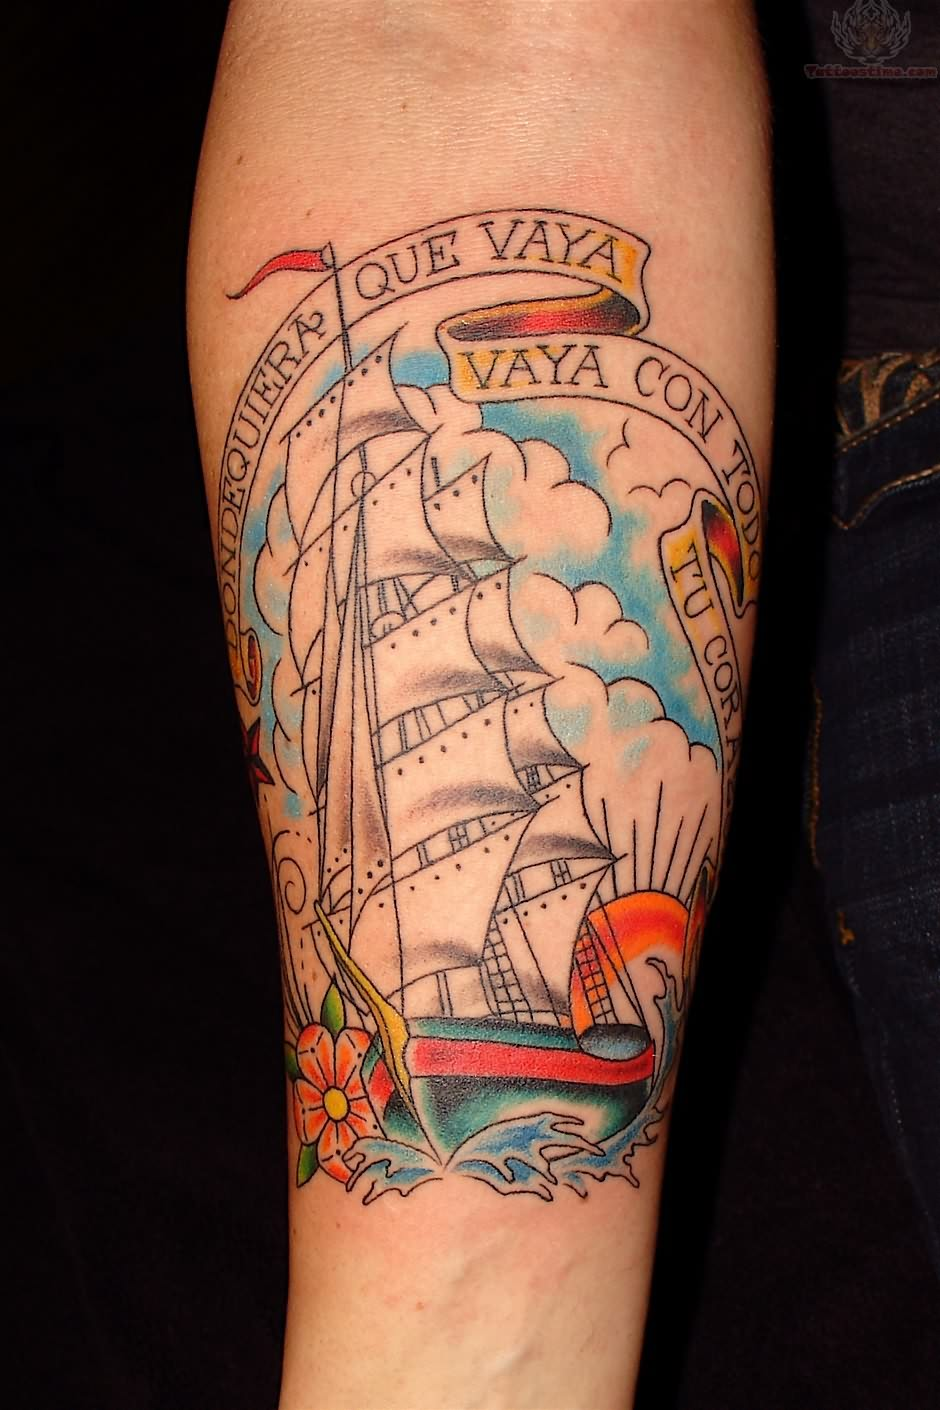 Joey ship tattoo on arm for men tattoomagz for Tattoo pitture